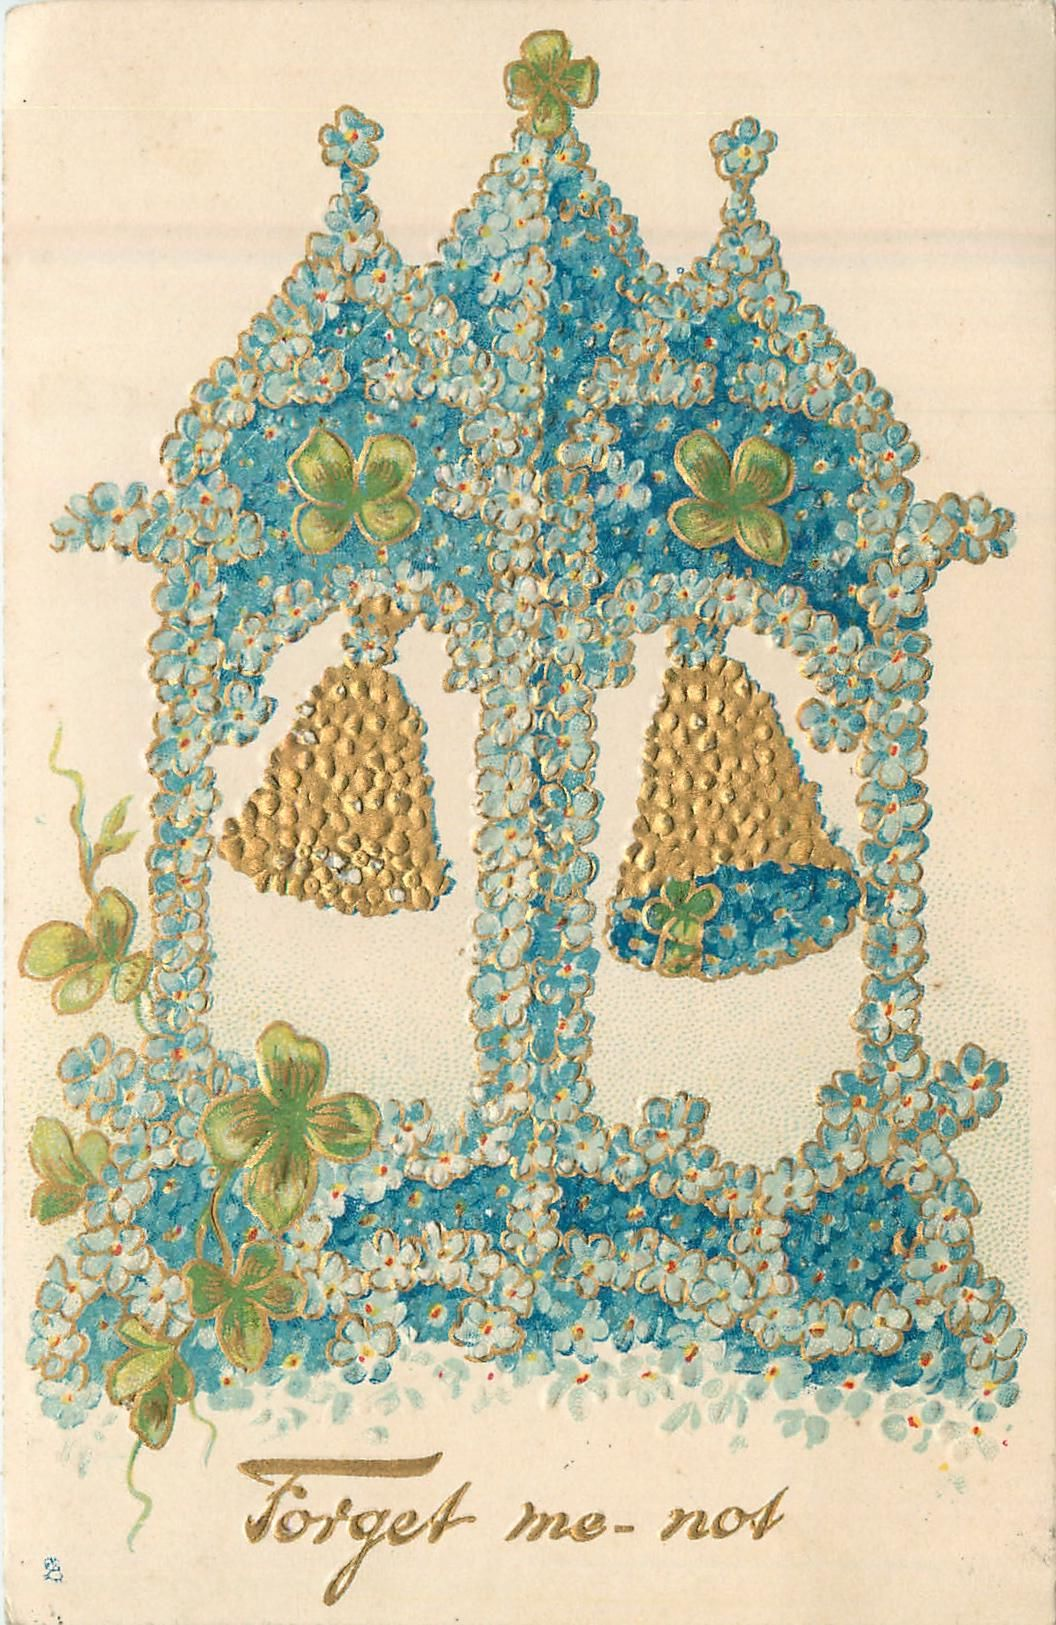 Full Sized Image: FORGET ME-NOT two bells under bell-tower of forget-me-nots - TuckDB